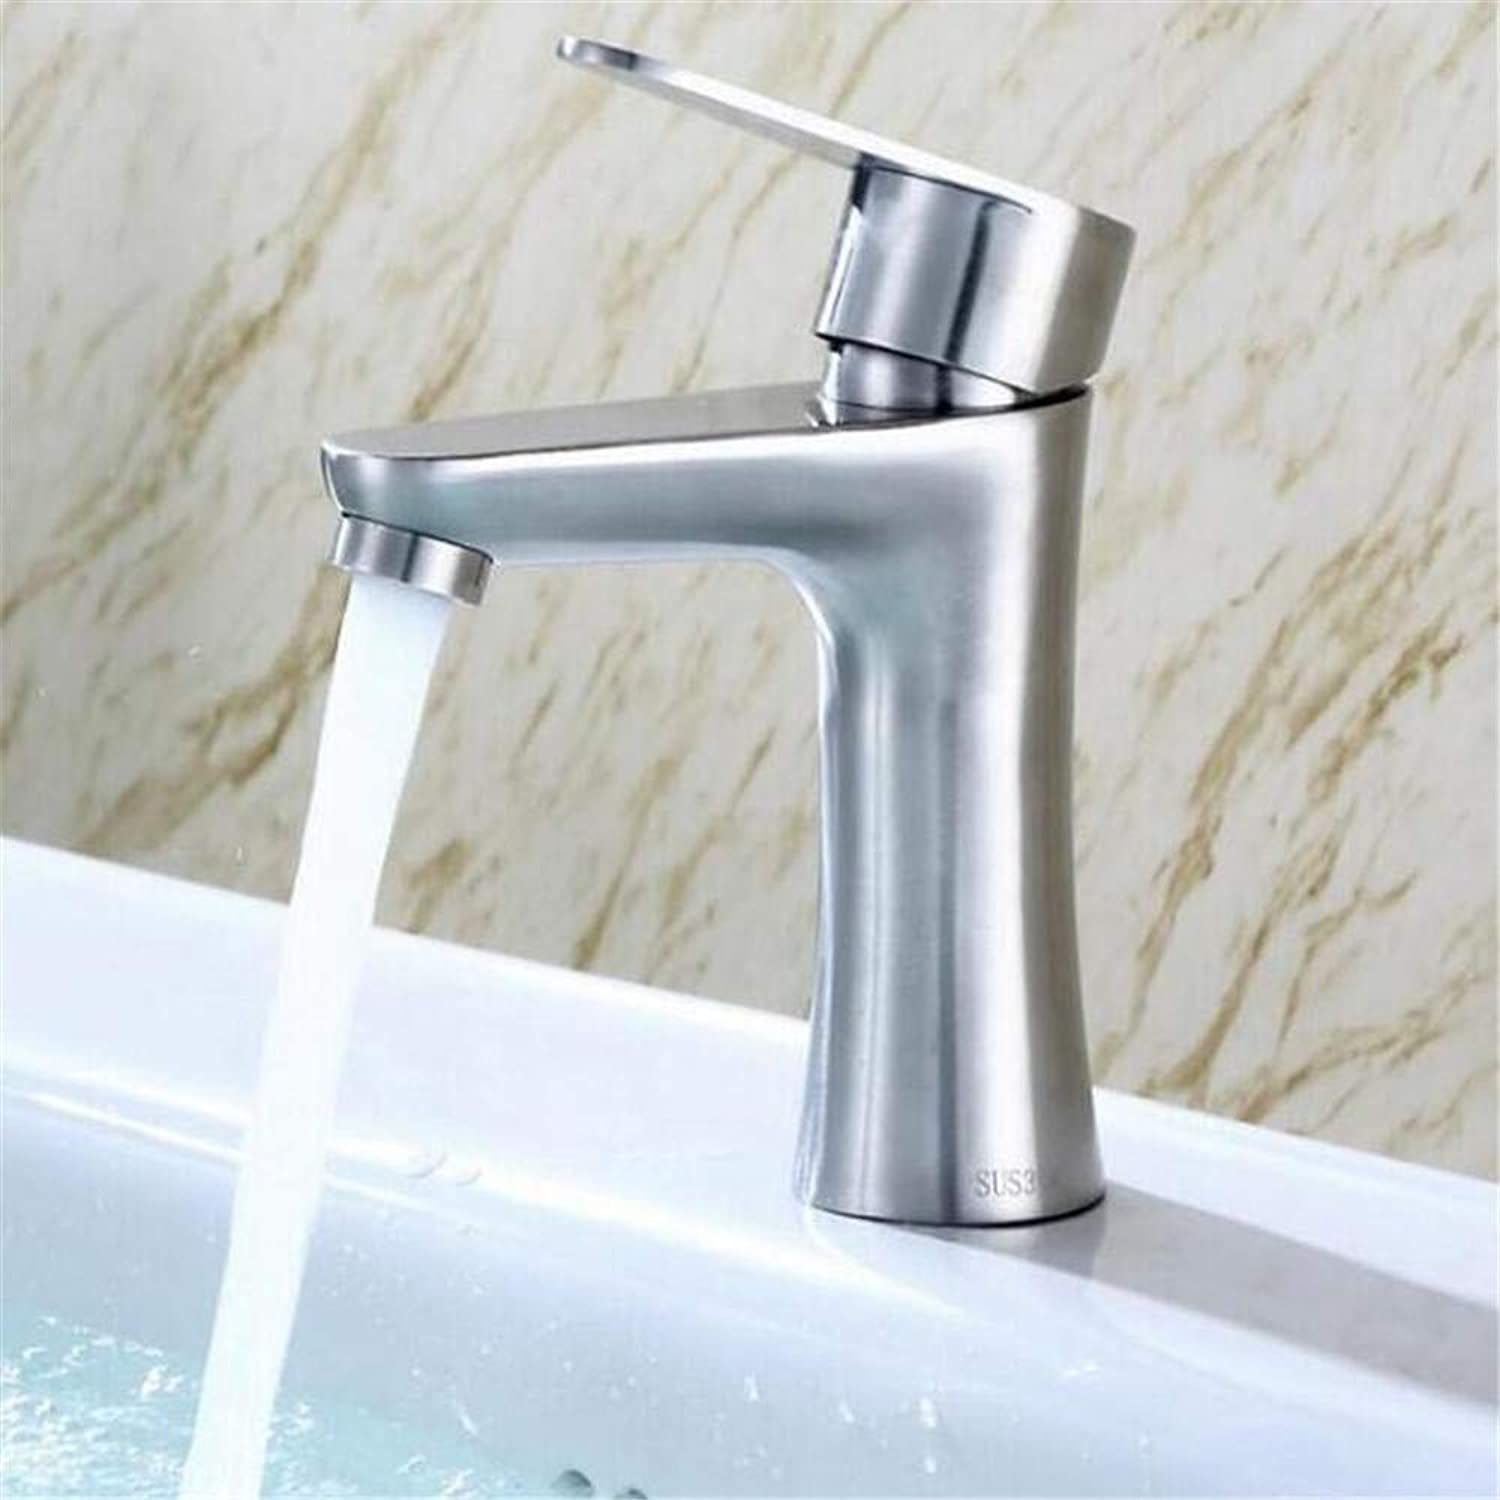 Basin Mixer Tap Stainless Steel Hot and Cold Water Faucet Bathroom Bathroom Faucet Stainless Steel Basin Faucet